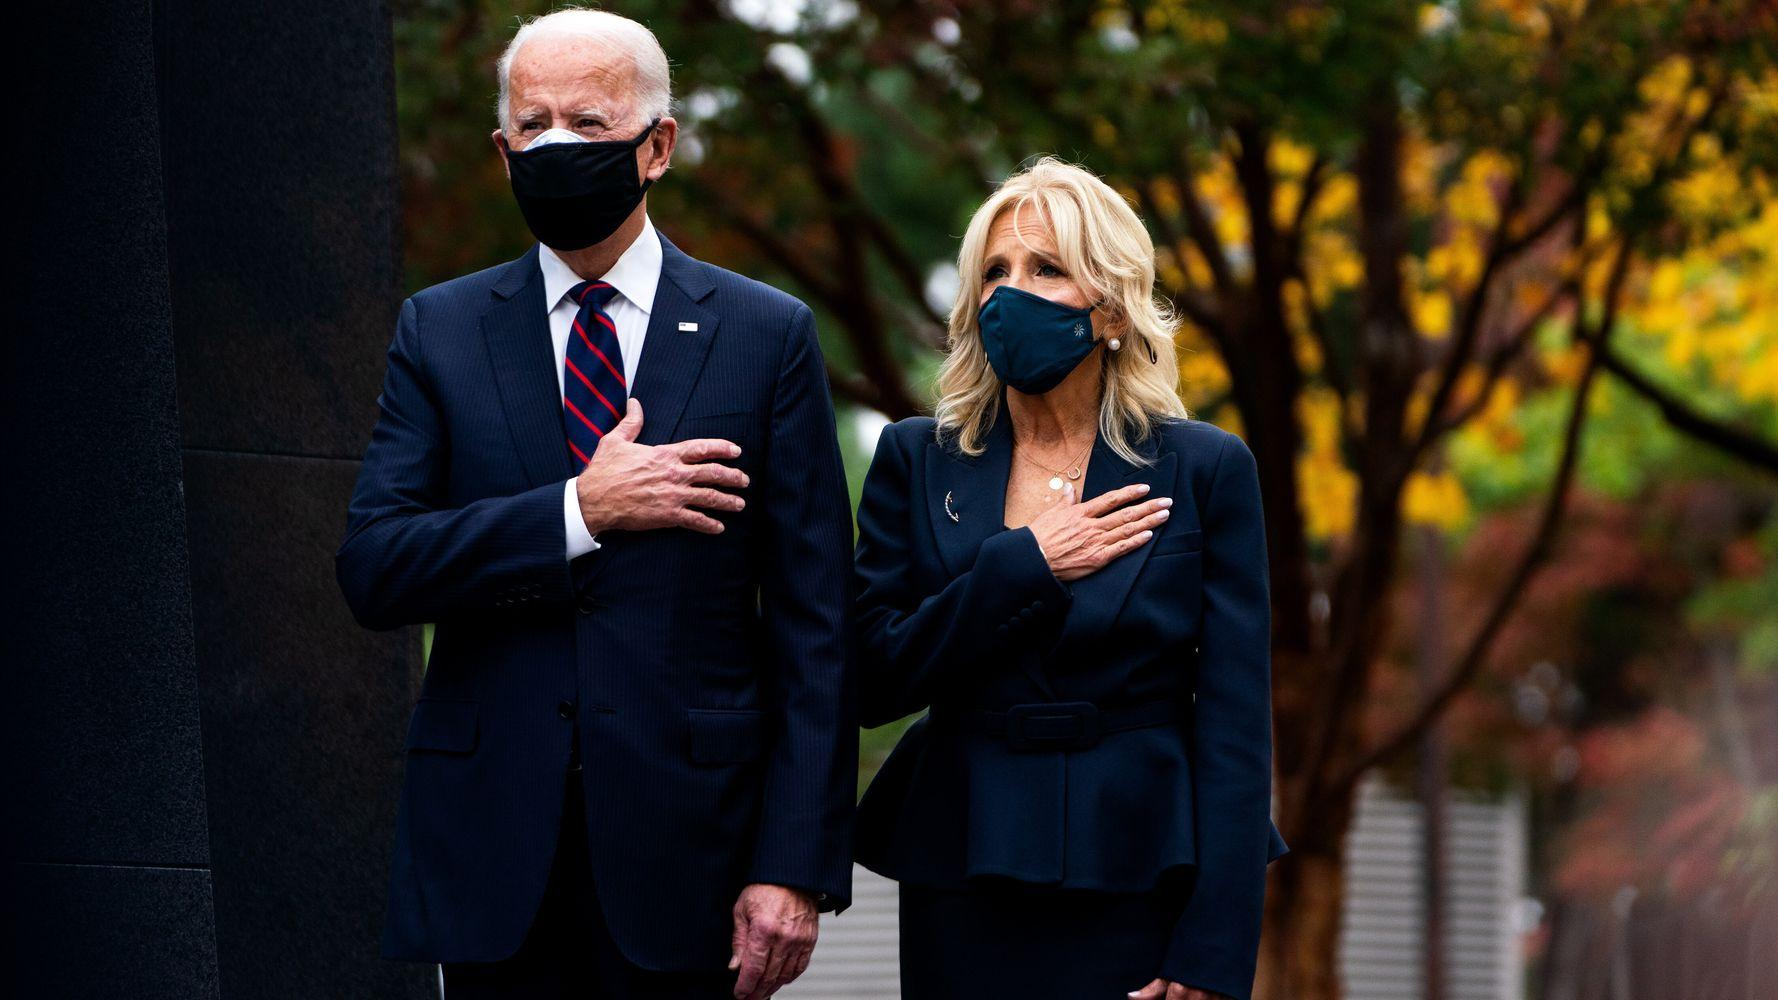 Joe And Jill Biden's Thanksgiving Op-Ed: 'We're Going To Get Through This Together'